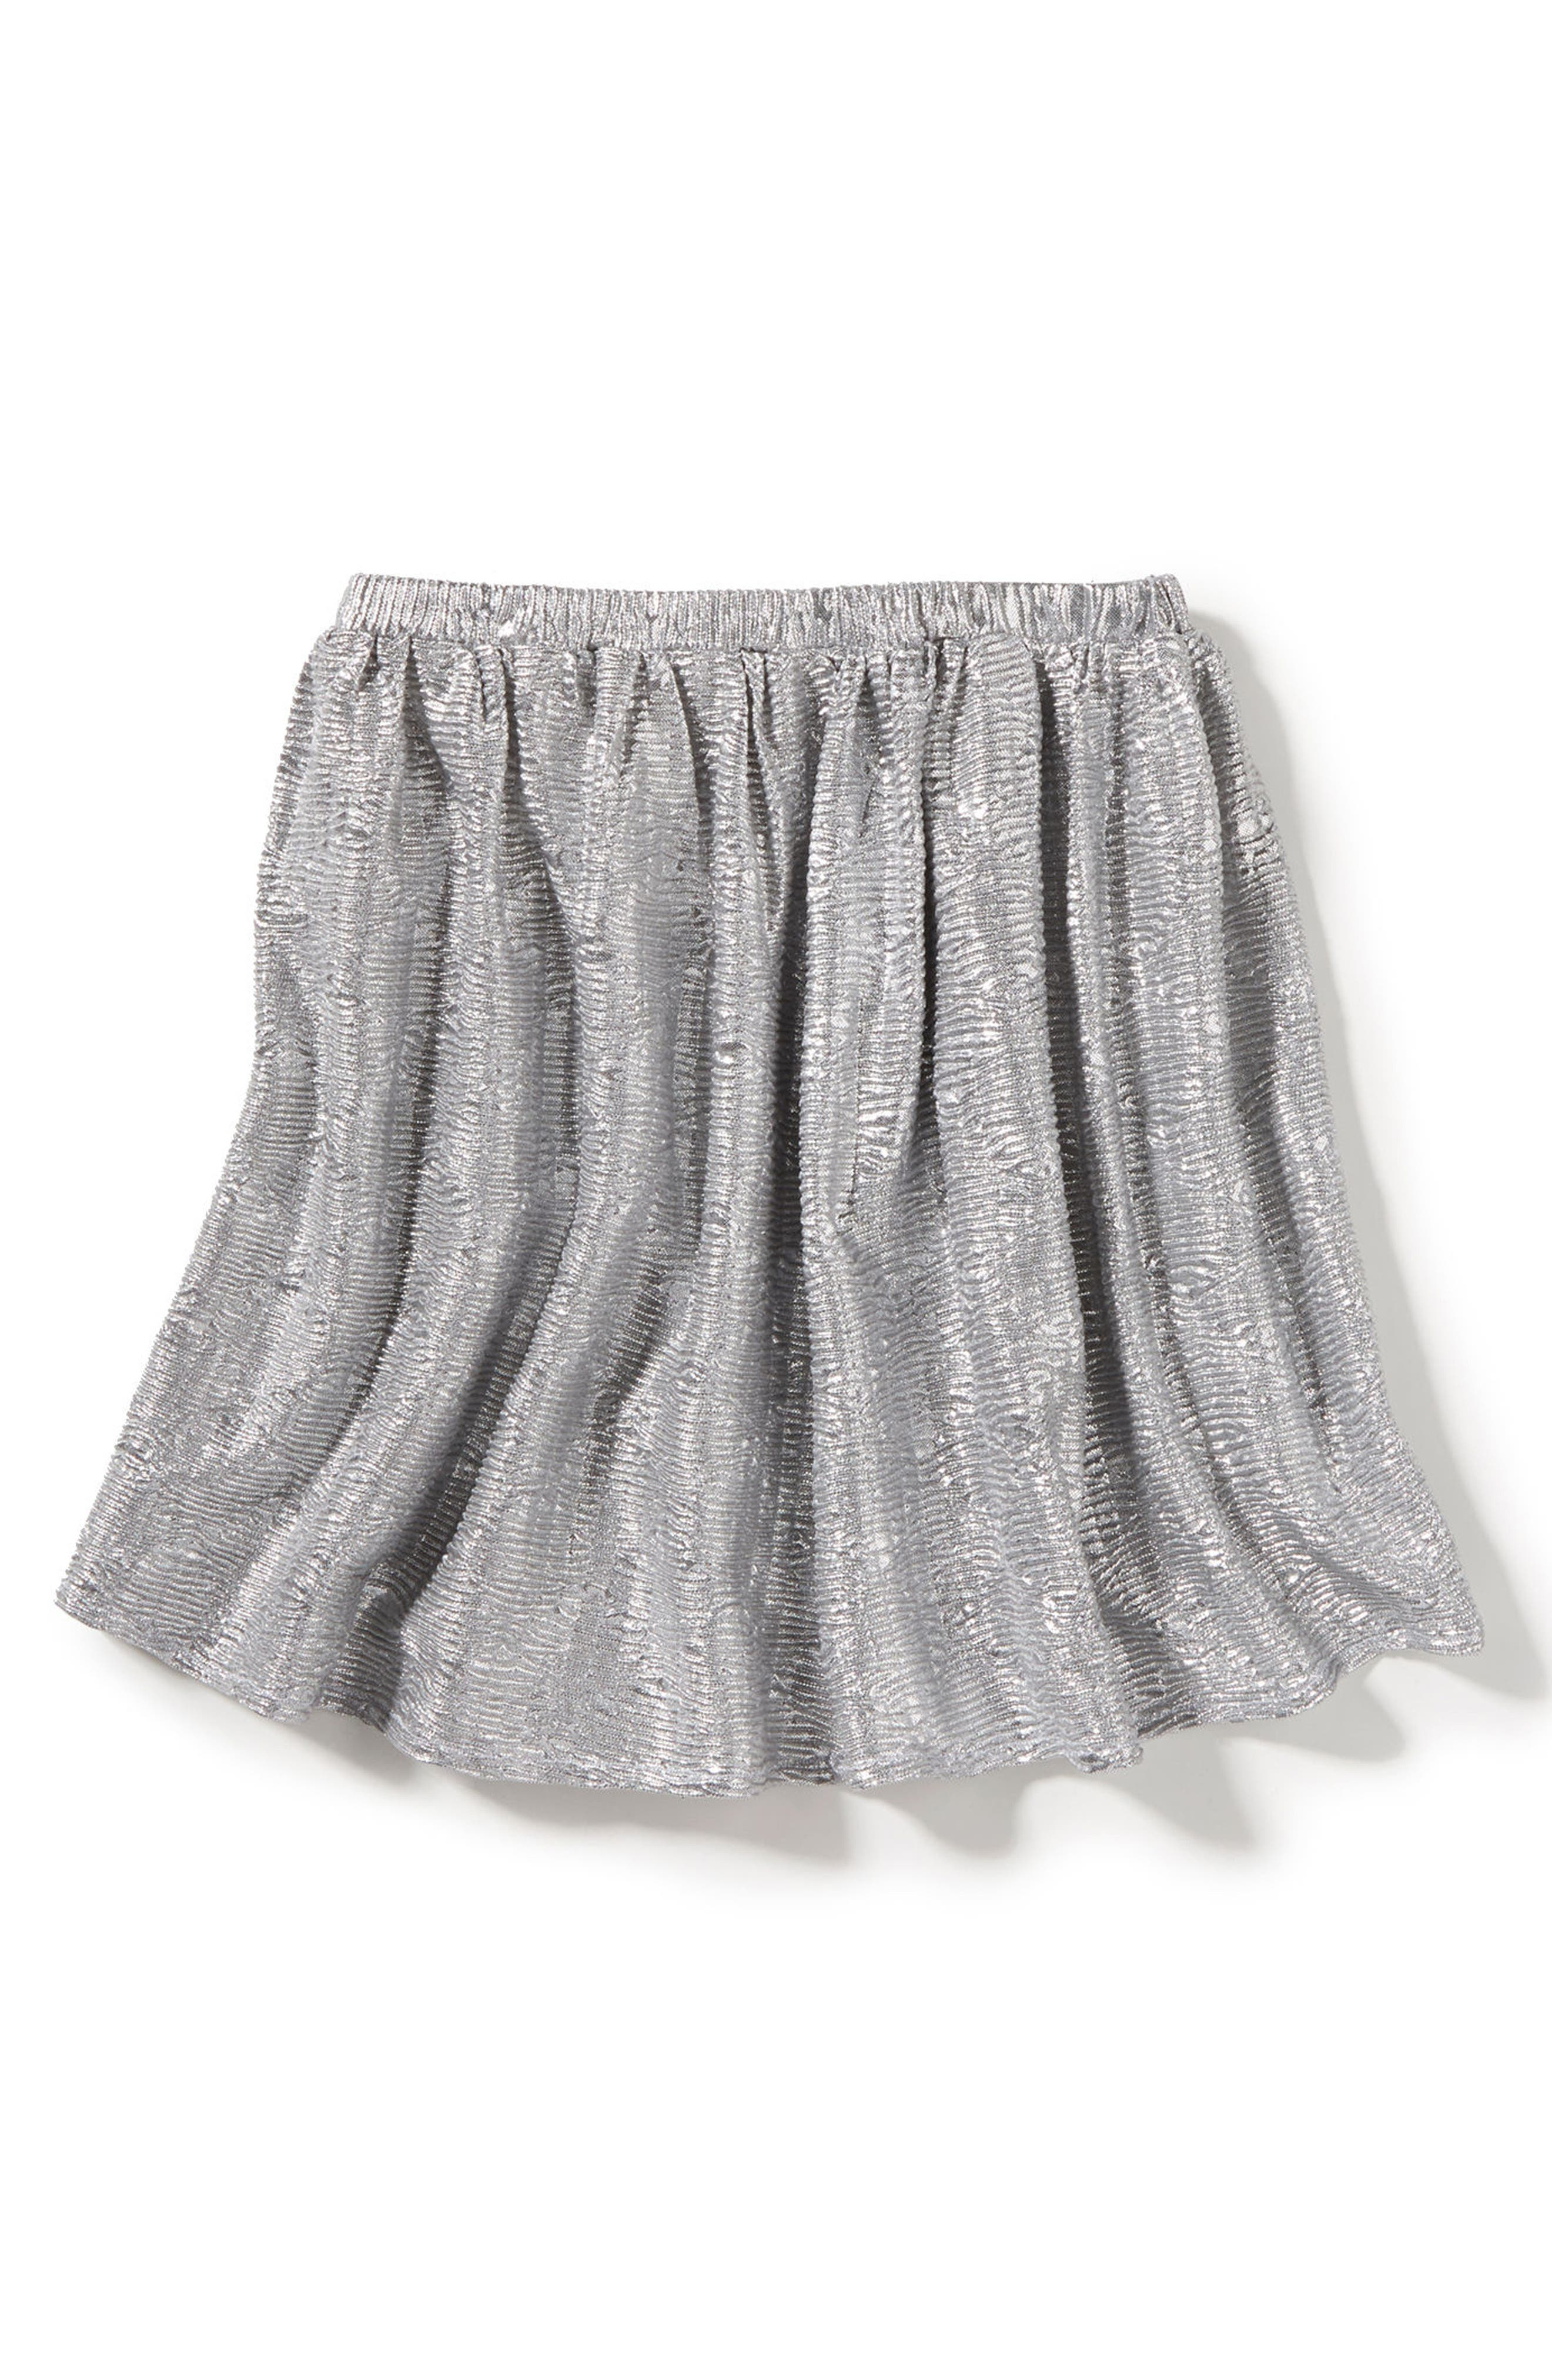 Marlow Metallic Skirt,                         Main,                         color, 040